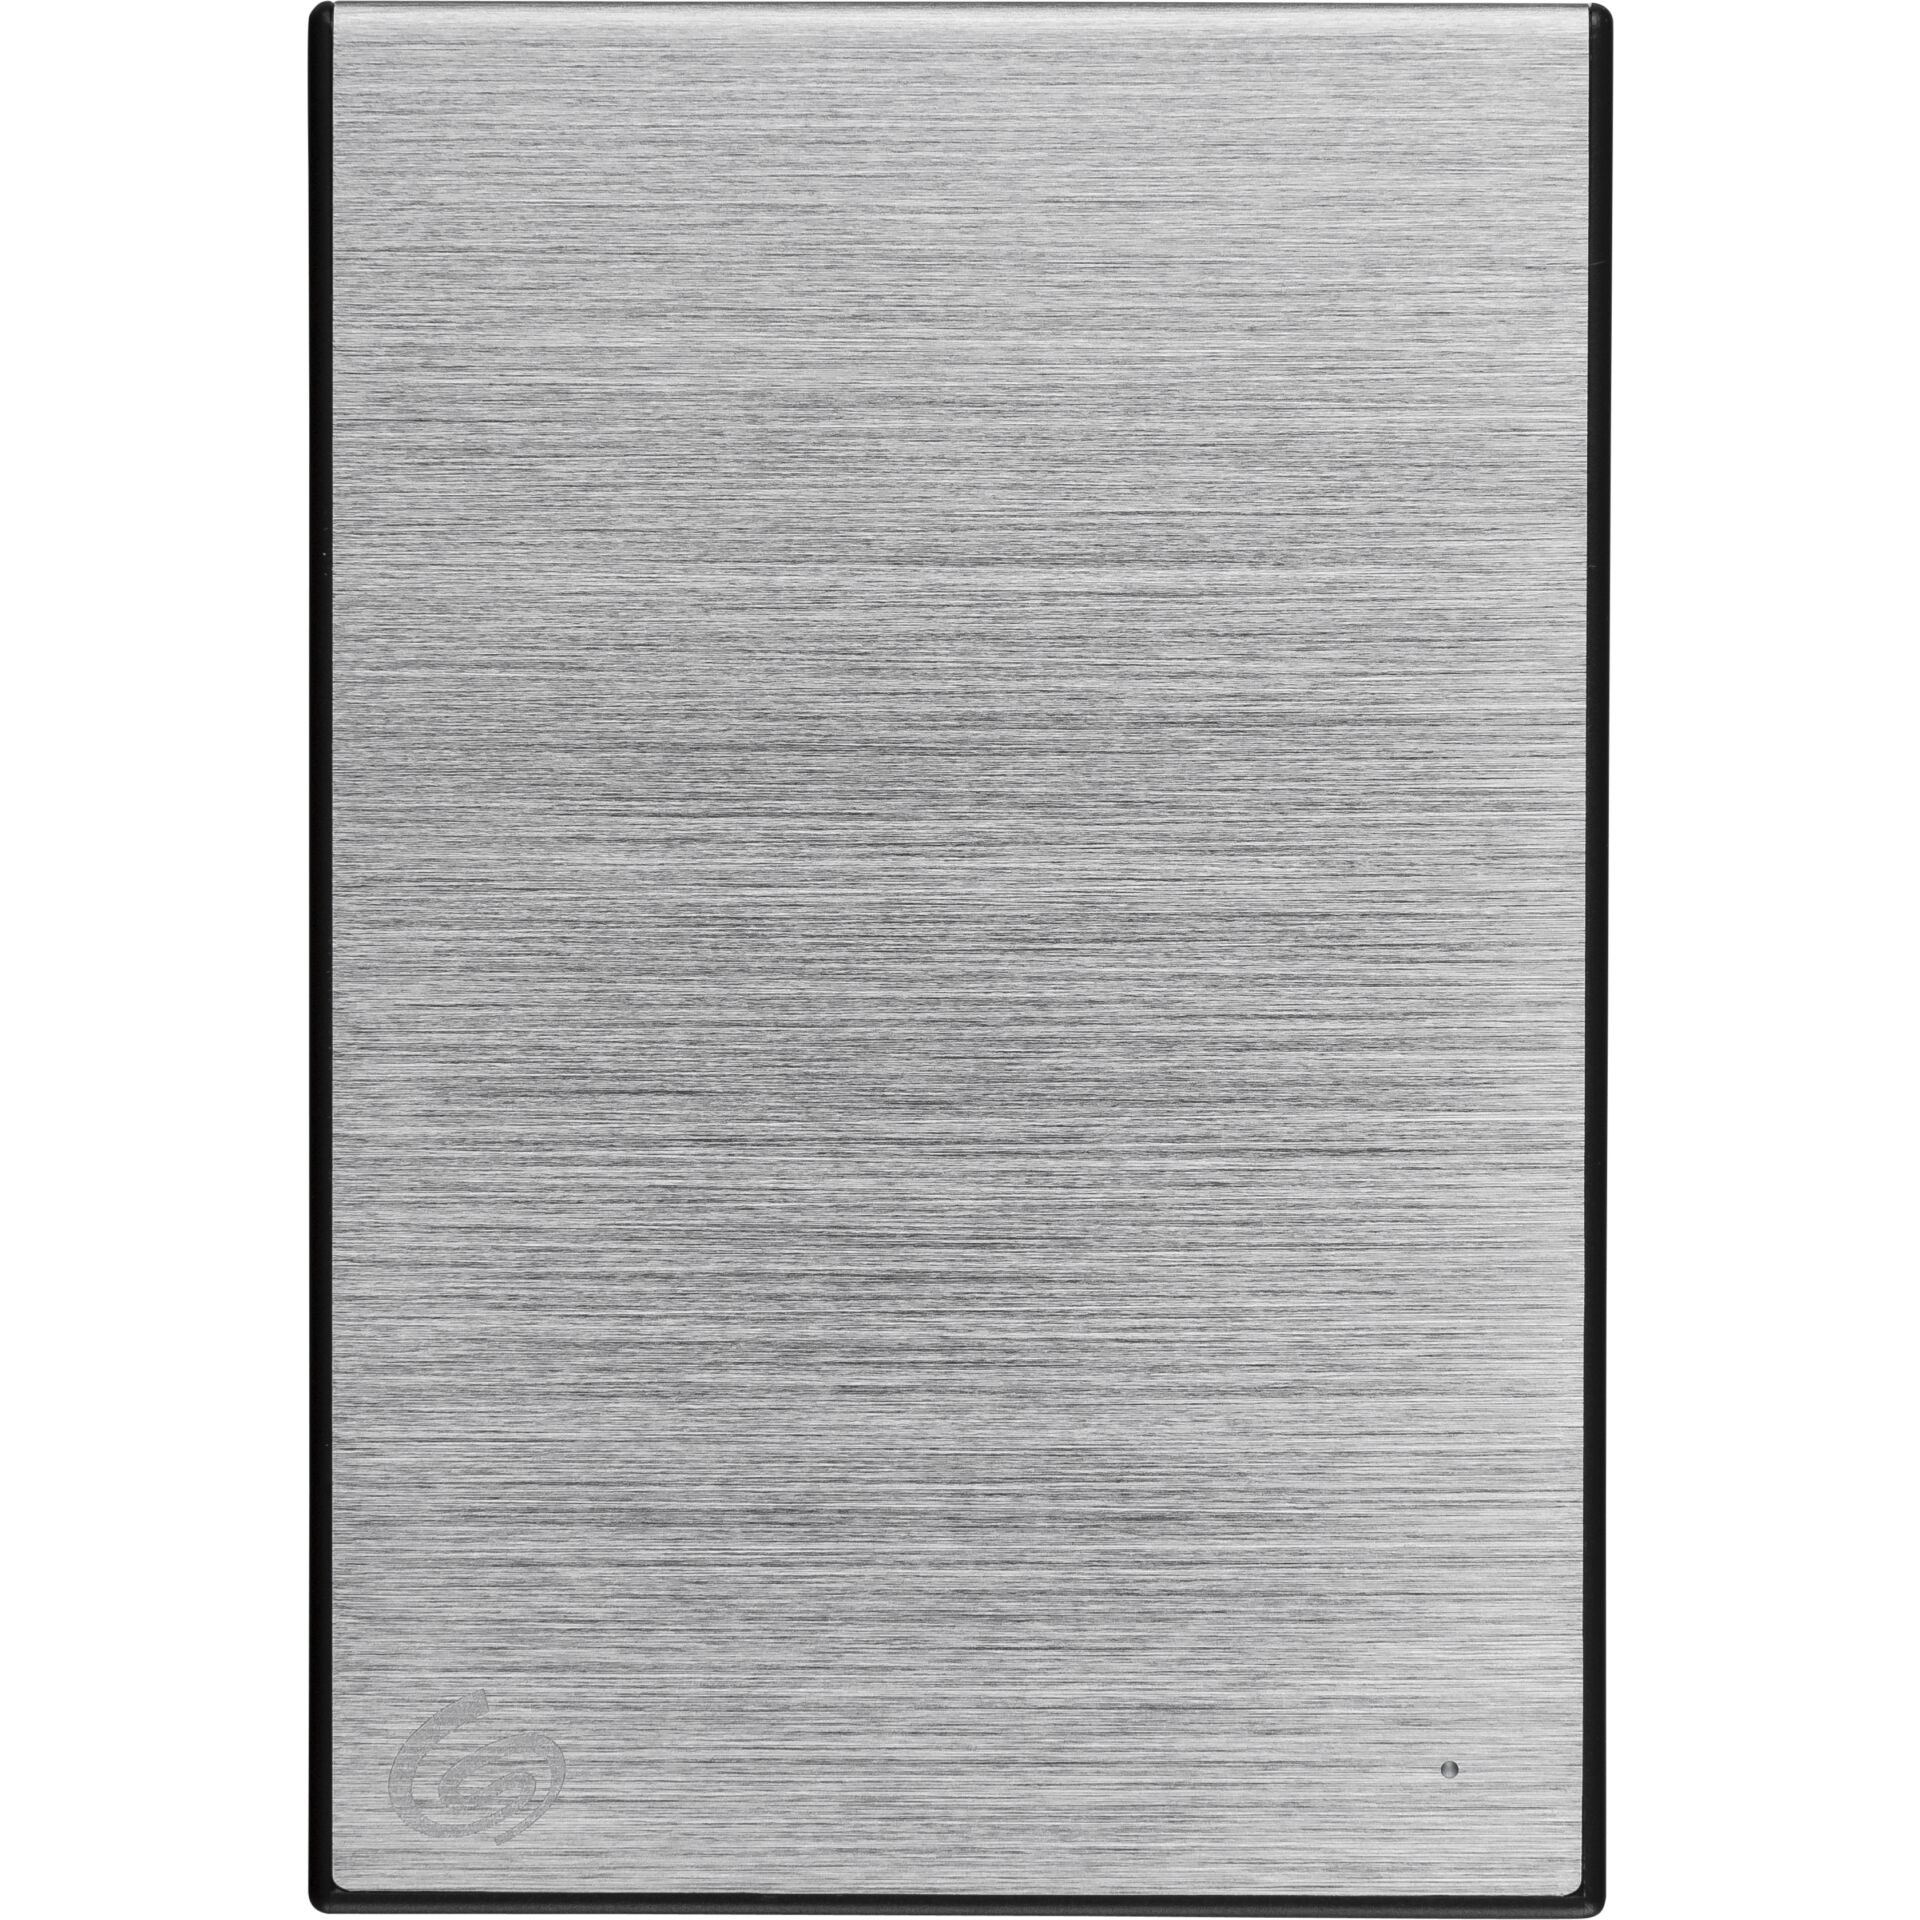 Seagate One Touch portable 1TB Silver USB 3.0